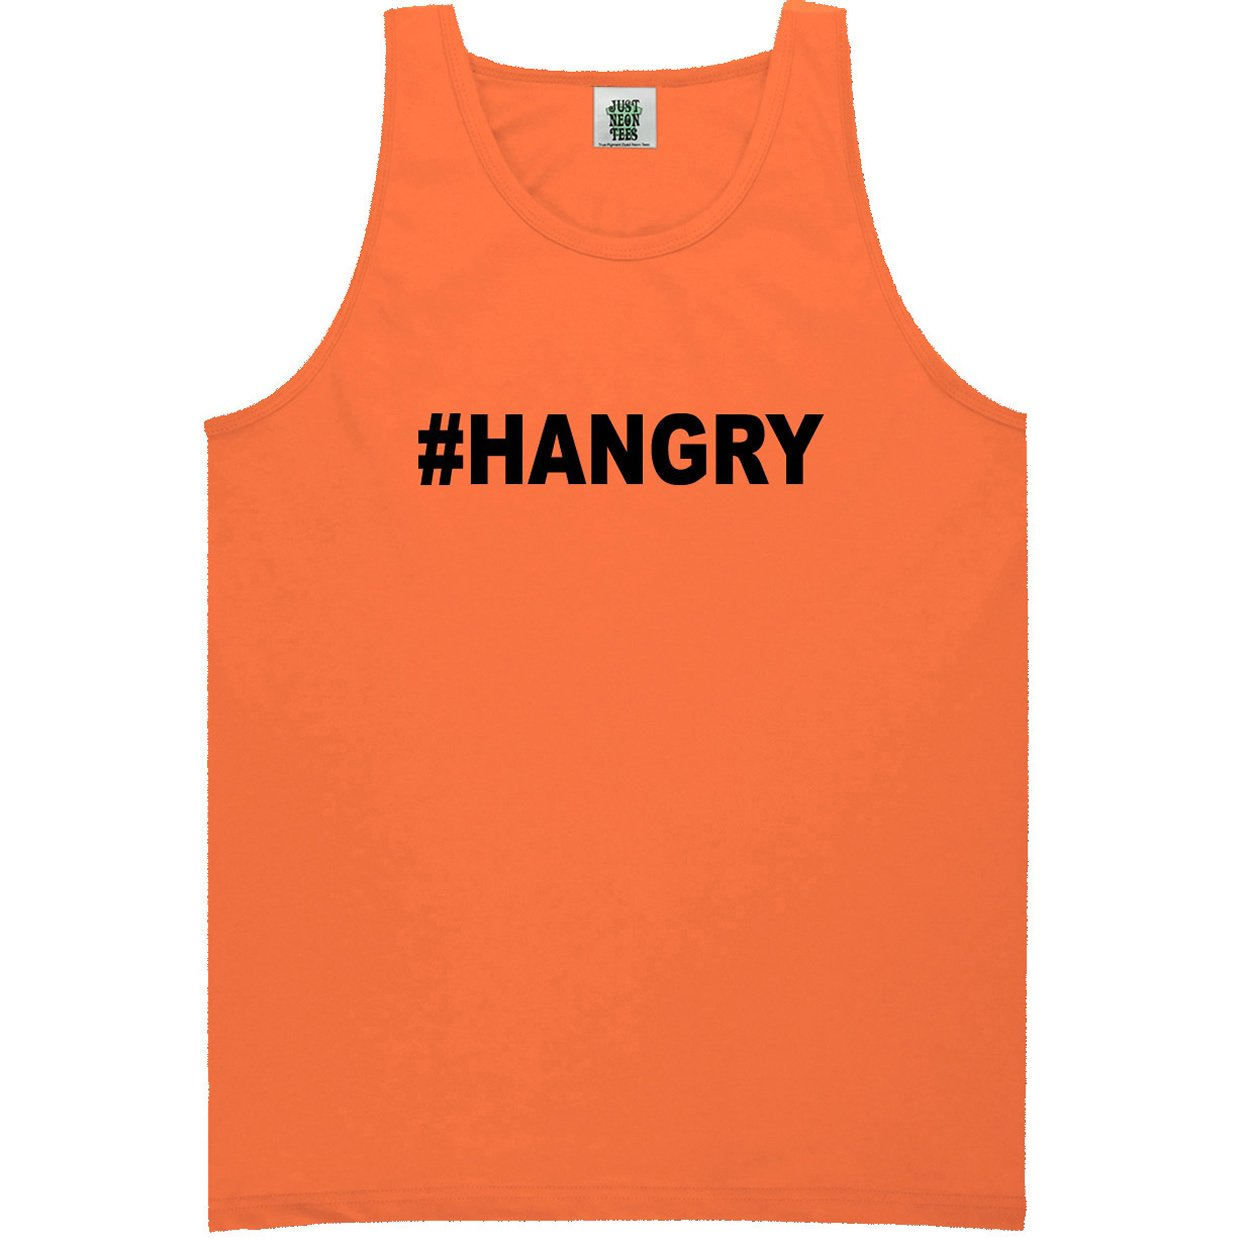 6 Bright Colors ZeroGravitee Youth #Hangry Bright Neon Tank Top